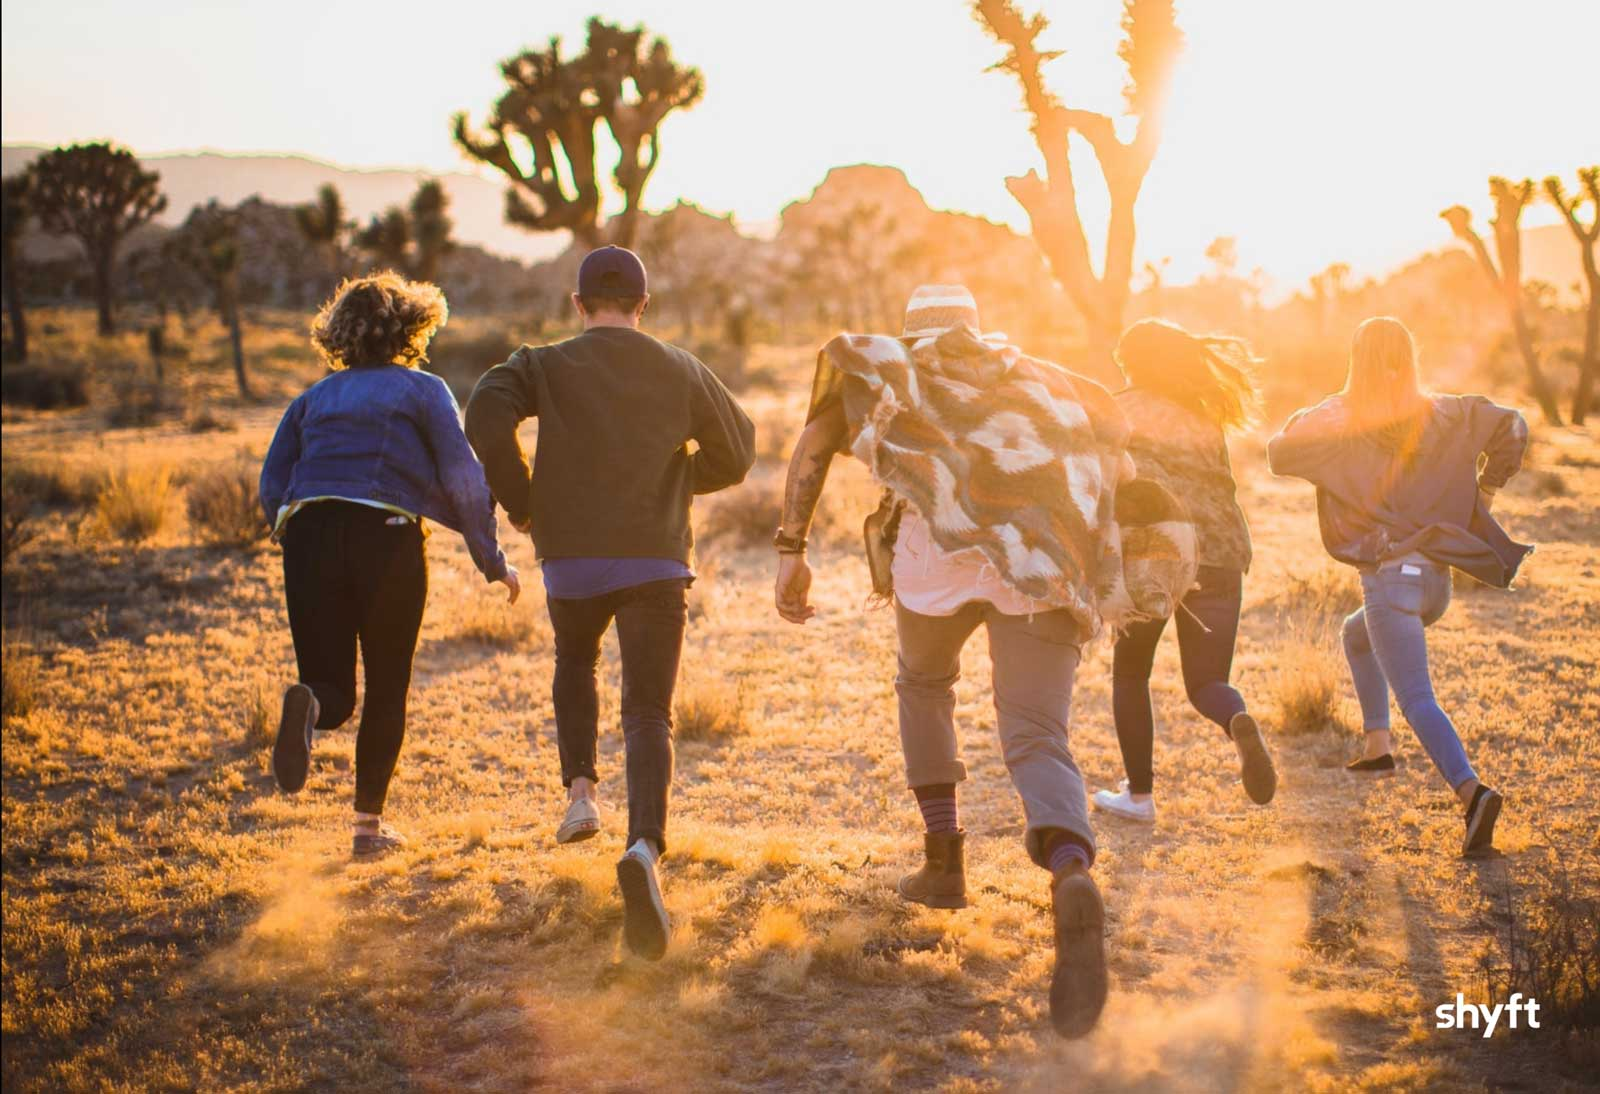 People in the wild running towards the sun and having fun outdoors